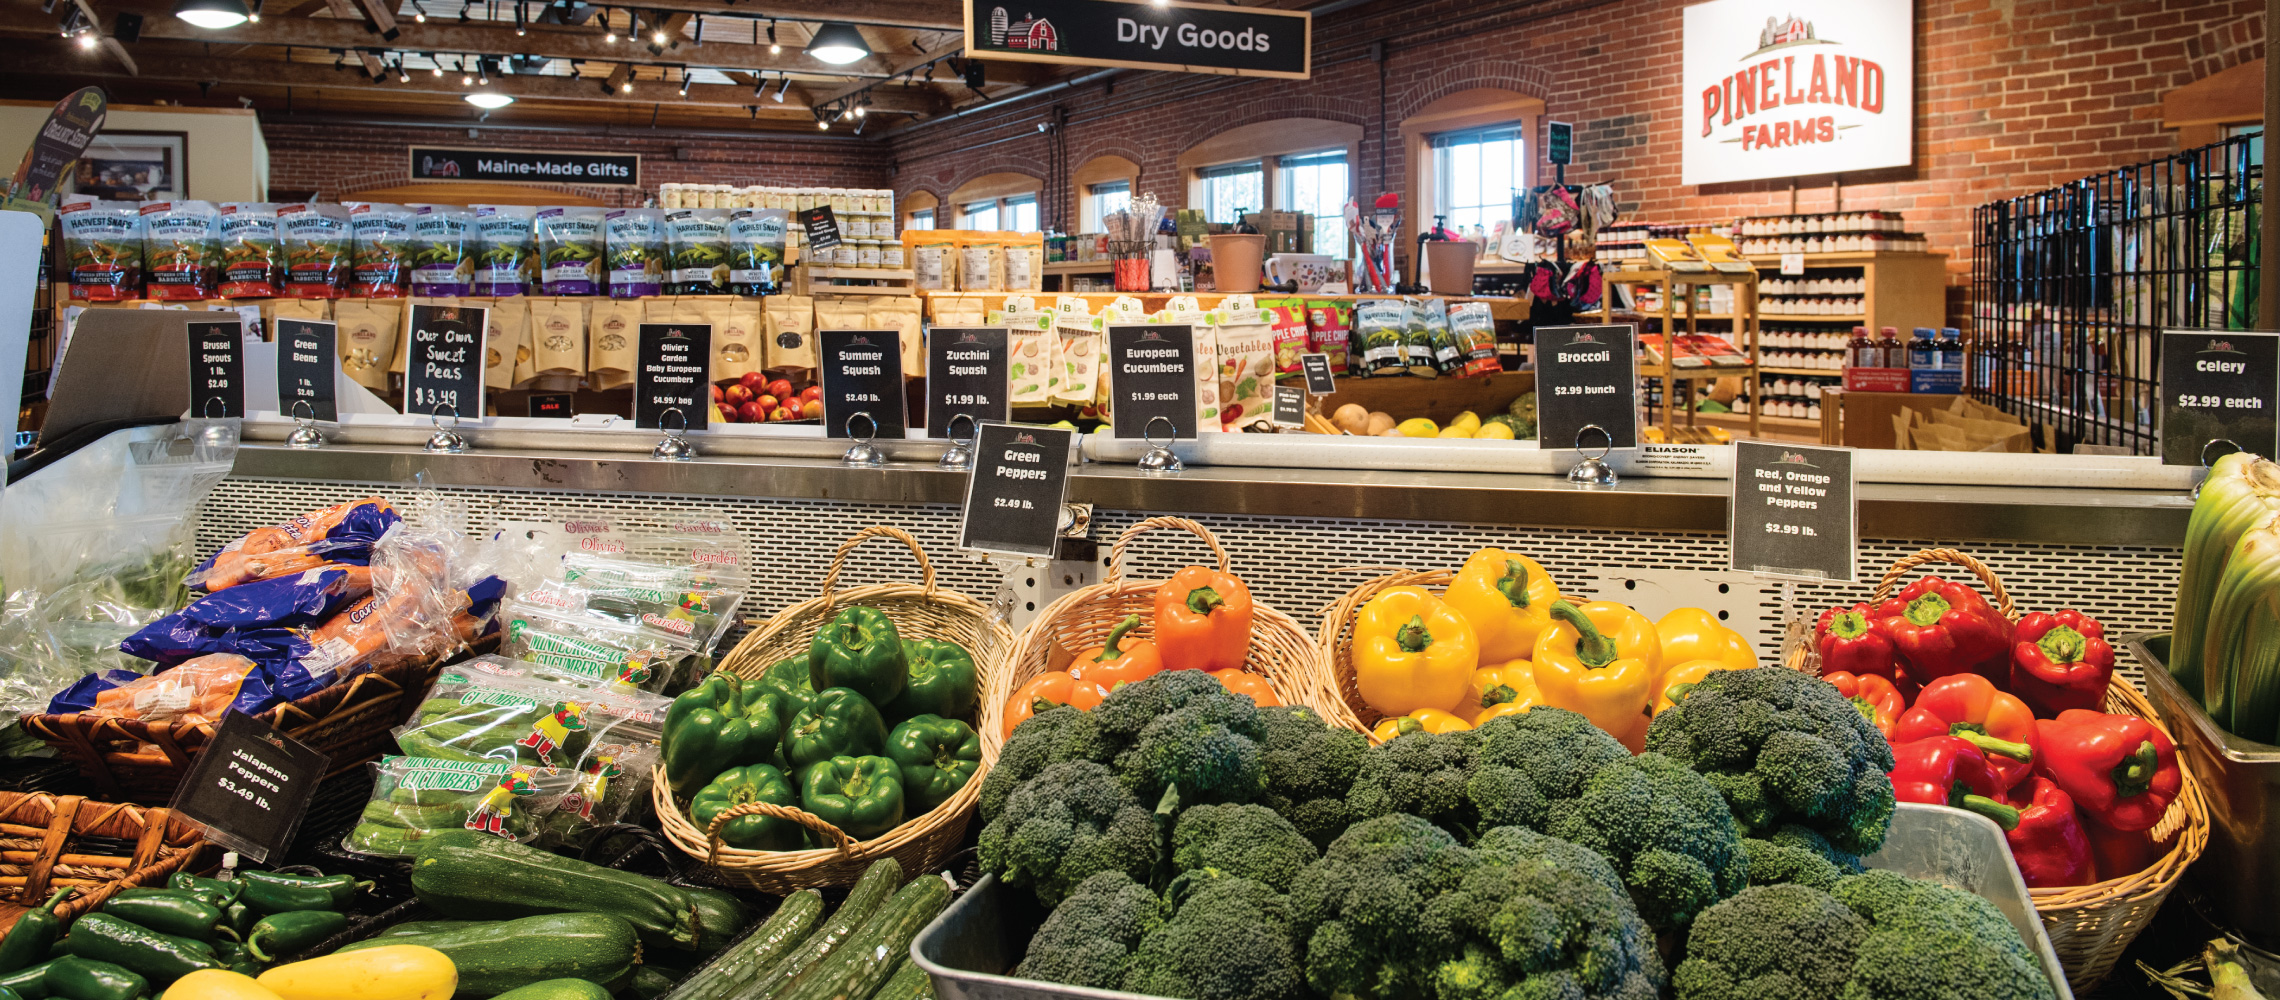 market grocery produce pineland farms new gloucester maine